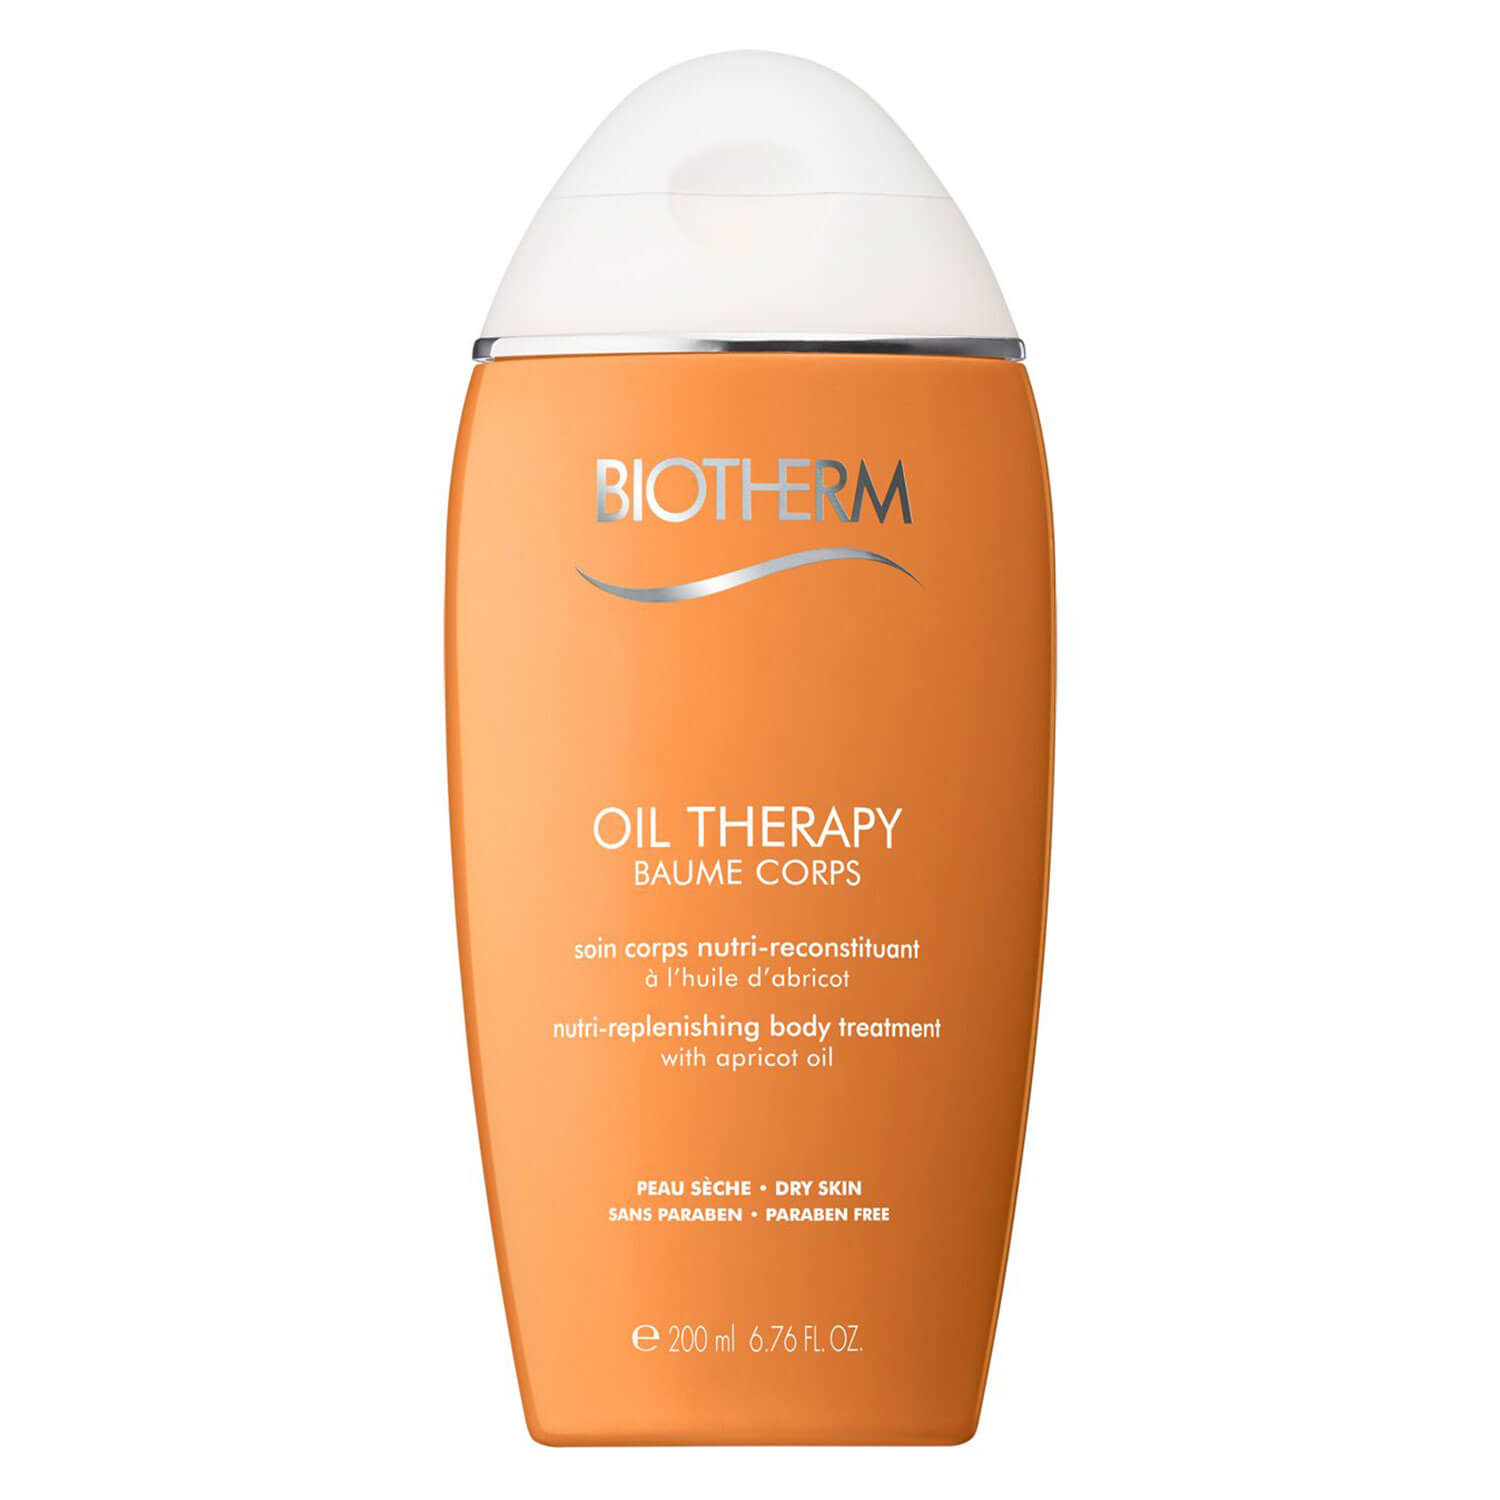 Oil Therapy – Baume Corps